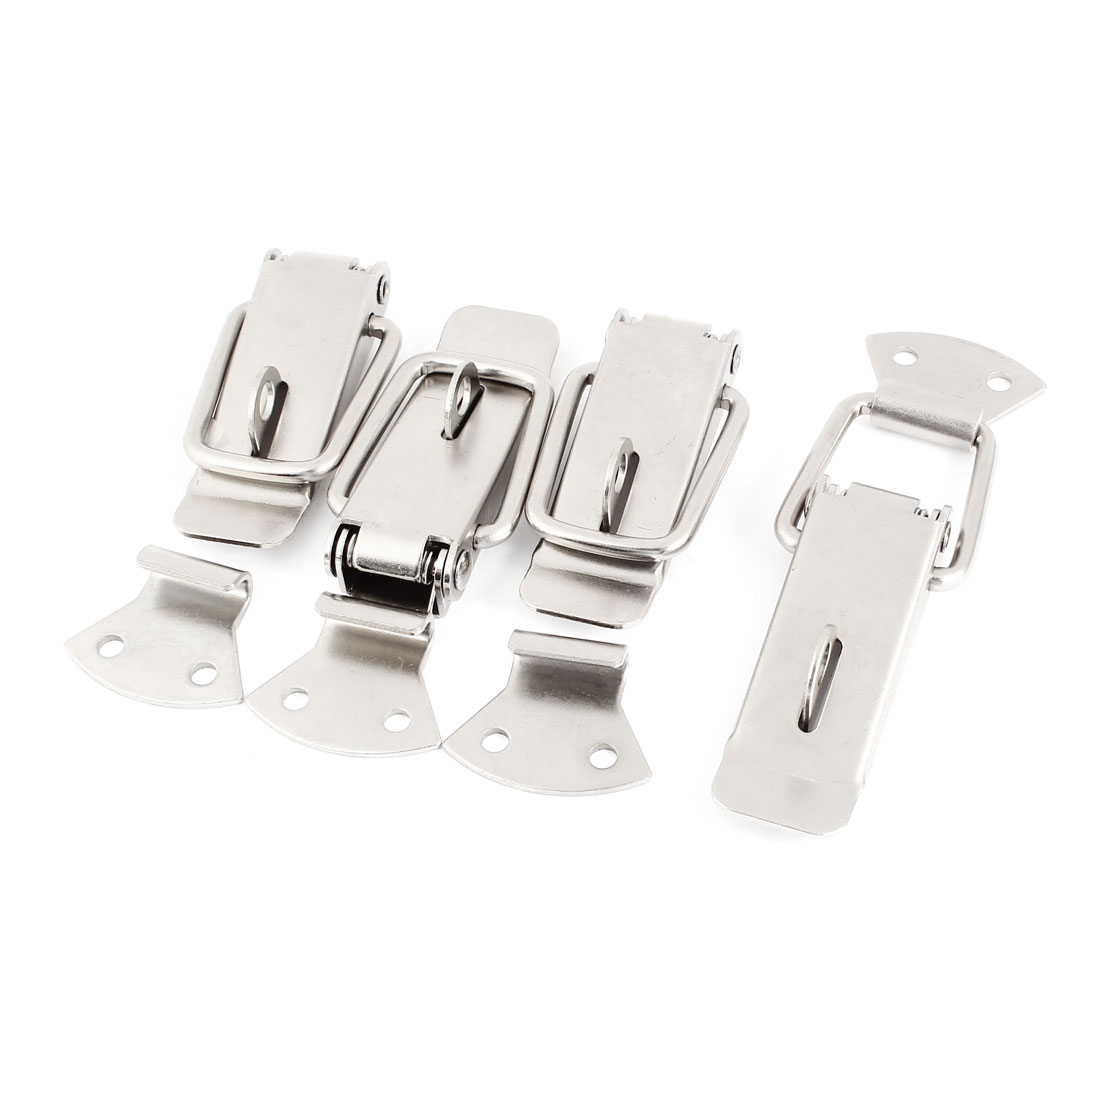 "Cabinet Security Spring Loaded Stainless Steel Toggle Latch Hasp 4.1"" 4 Sets"